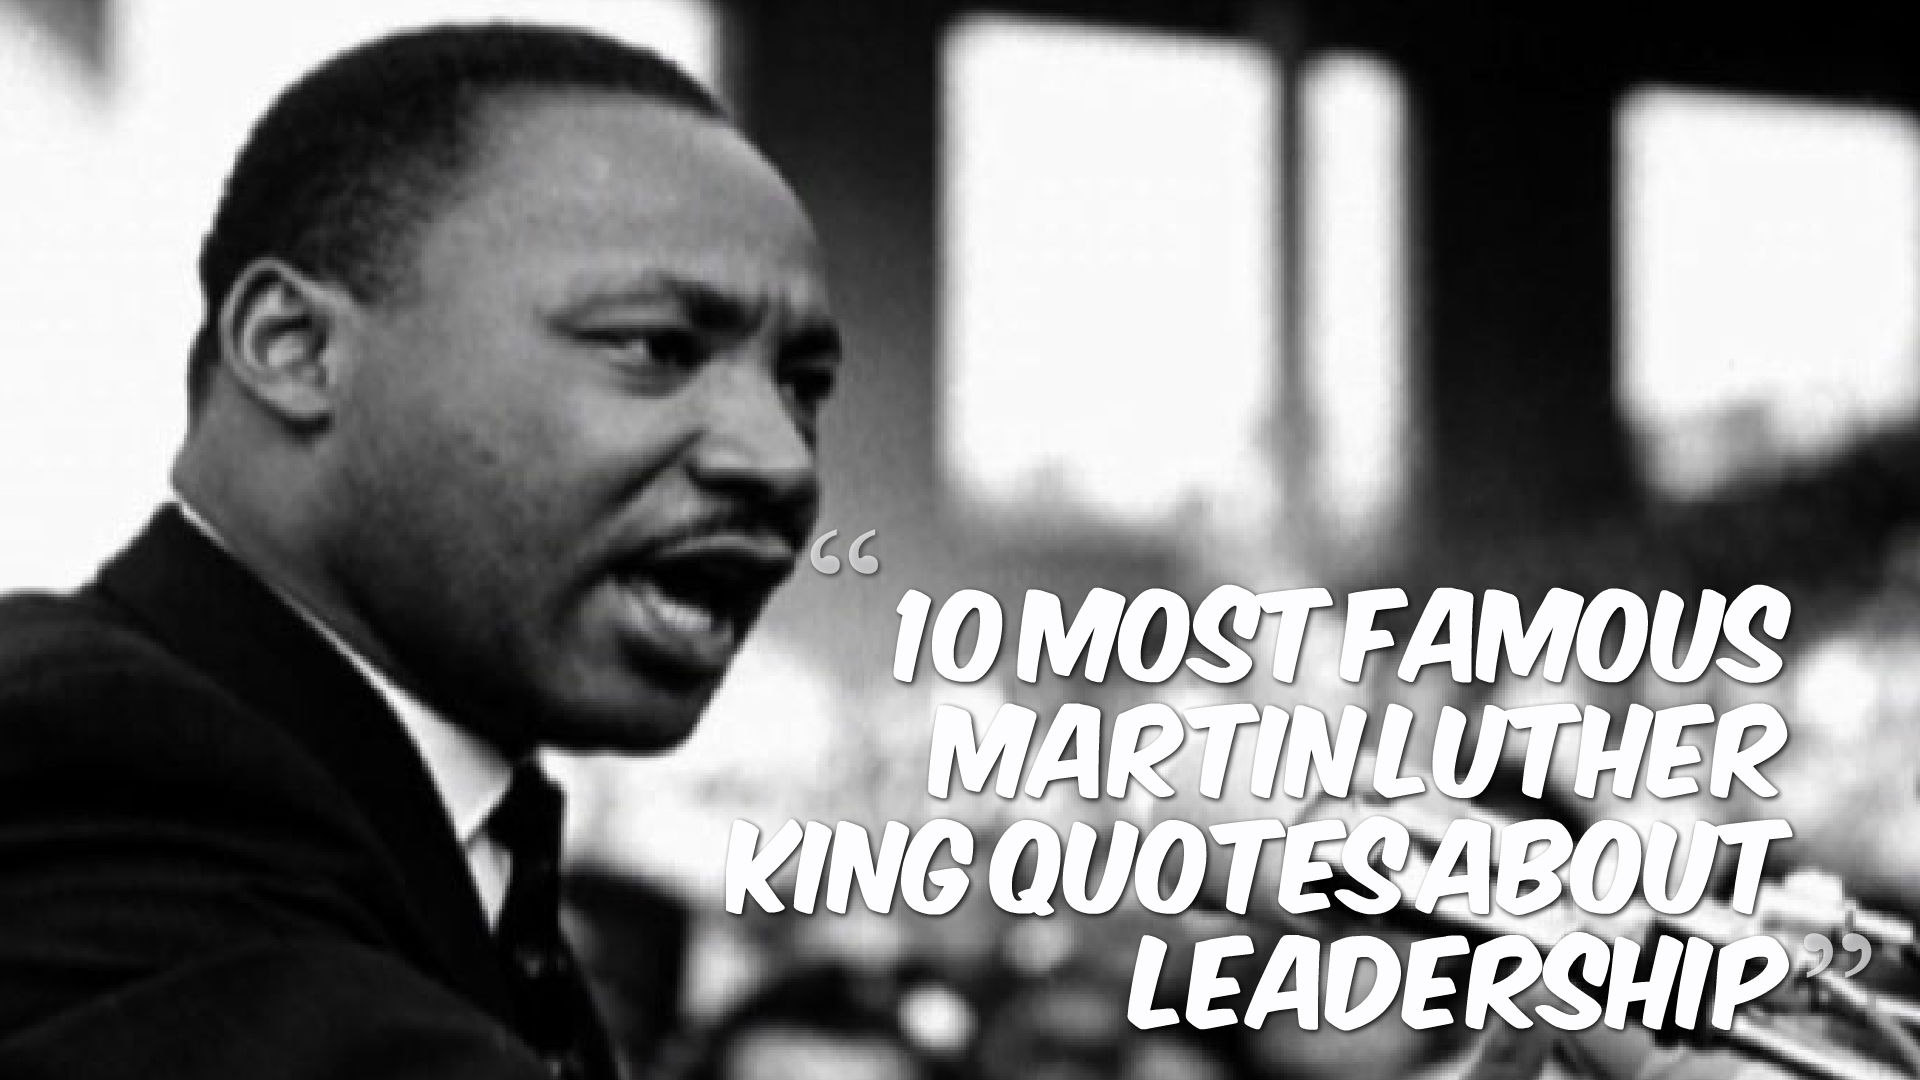 martin luther kings leadership Martin luther king's style of leadership slideshare uses cookies to improve functionality and performance, and to provide you with relevant advertising if you continue browsing the site, you agree to the use of cookies on this website.